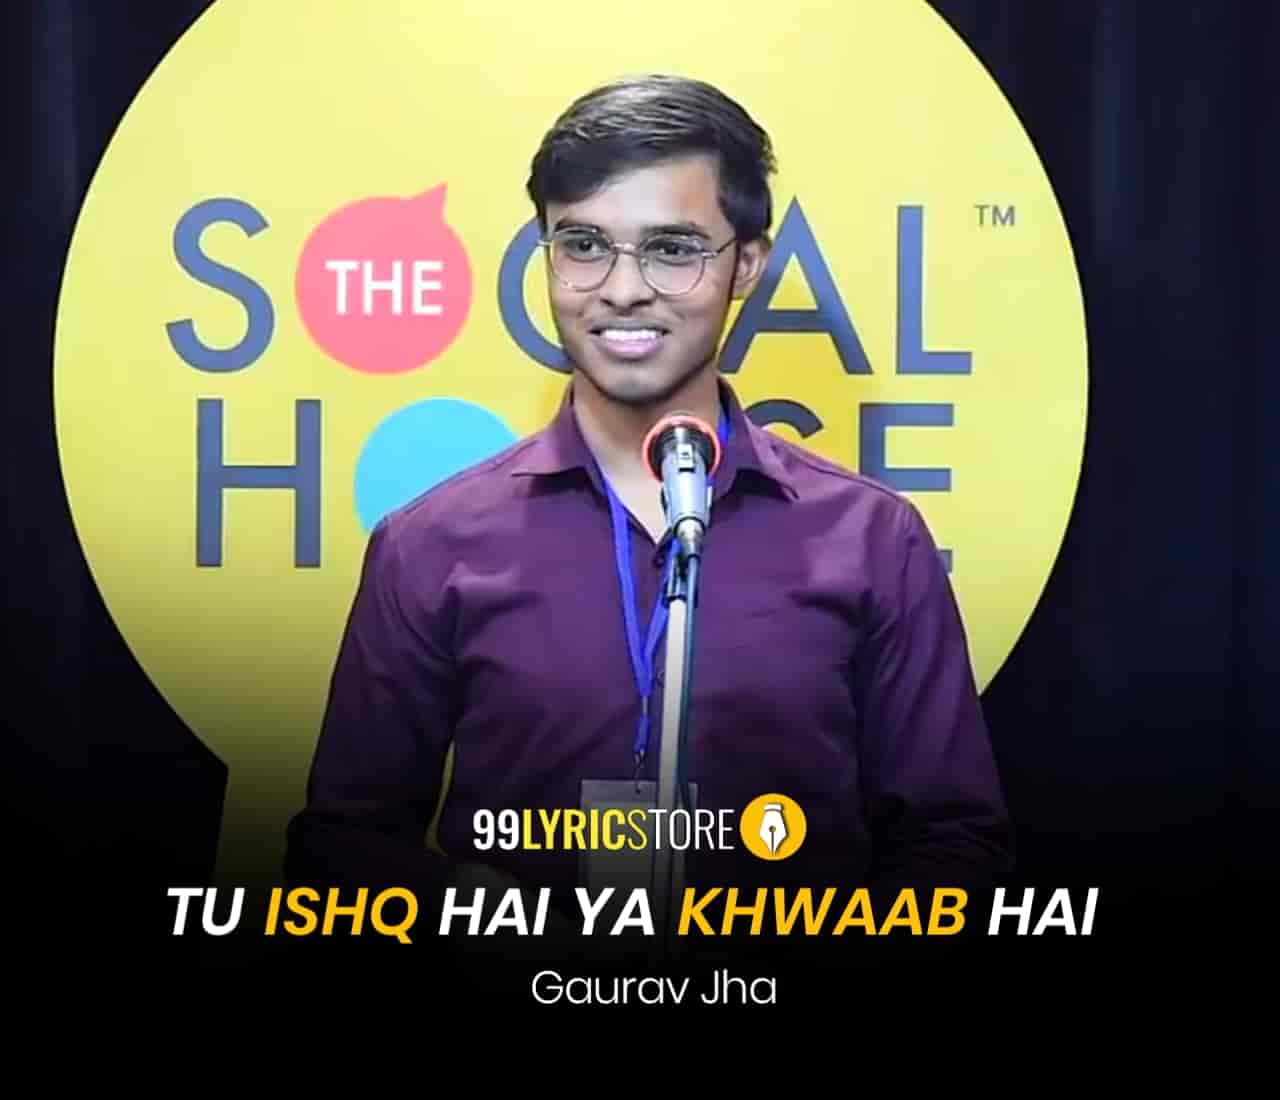 About This Poetry :- This beautiful love poetry  'Tu Ishq Hai Ya Khwaab Hai' for The Social House is performed by Gaurav Jha and also written by him which is very beautiful a piece.